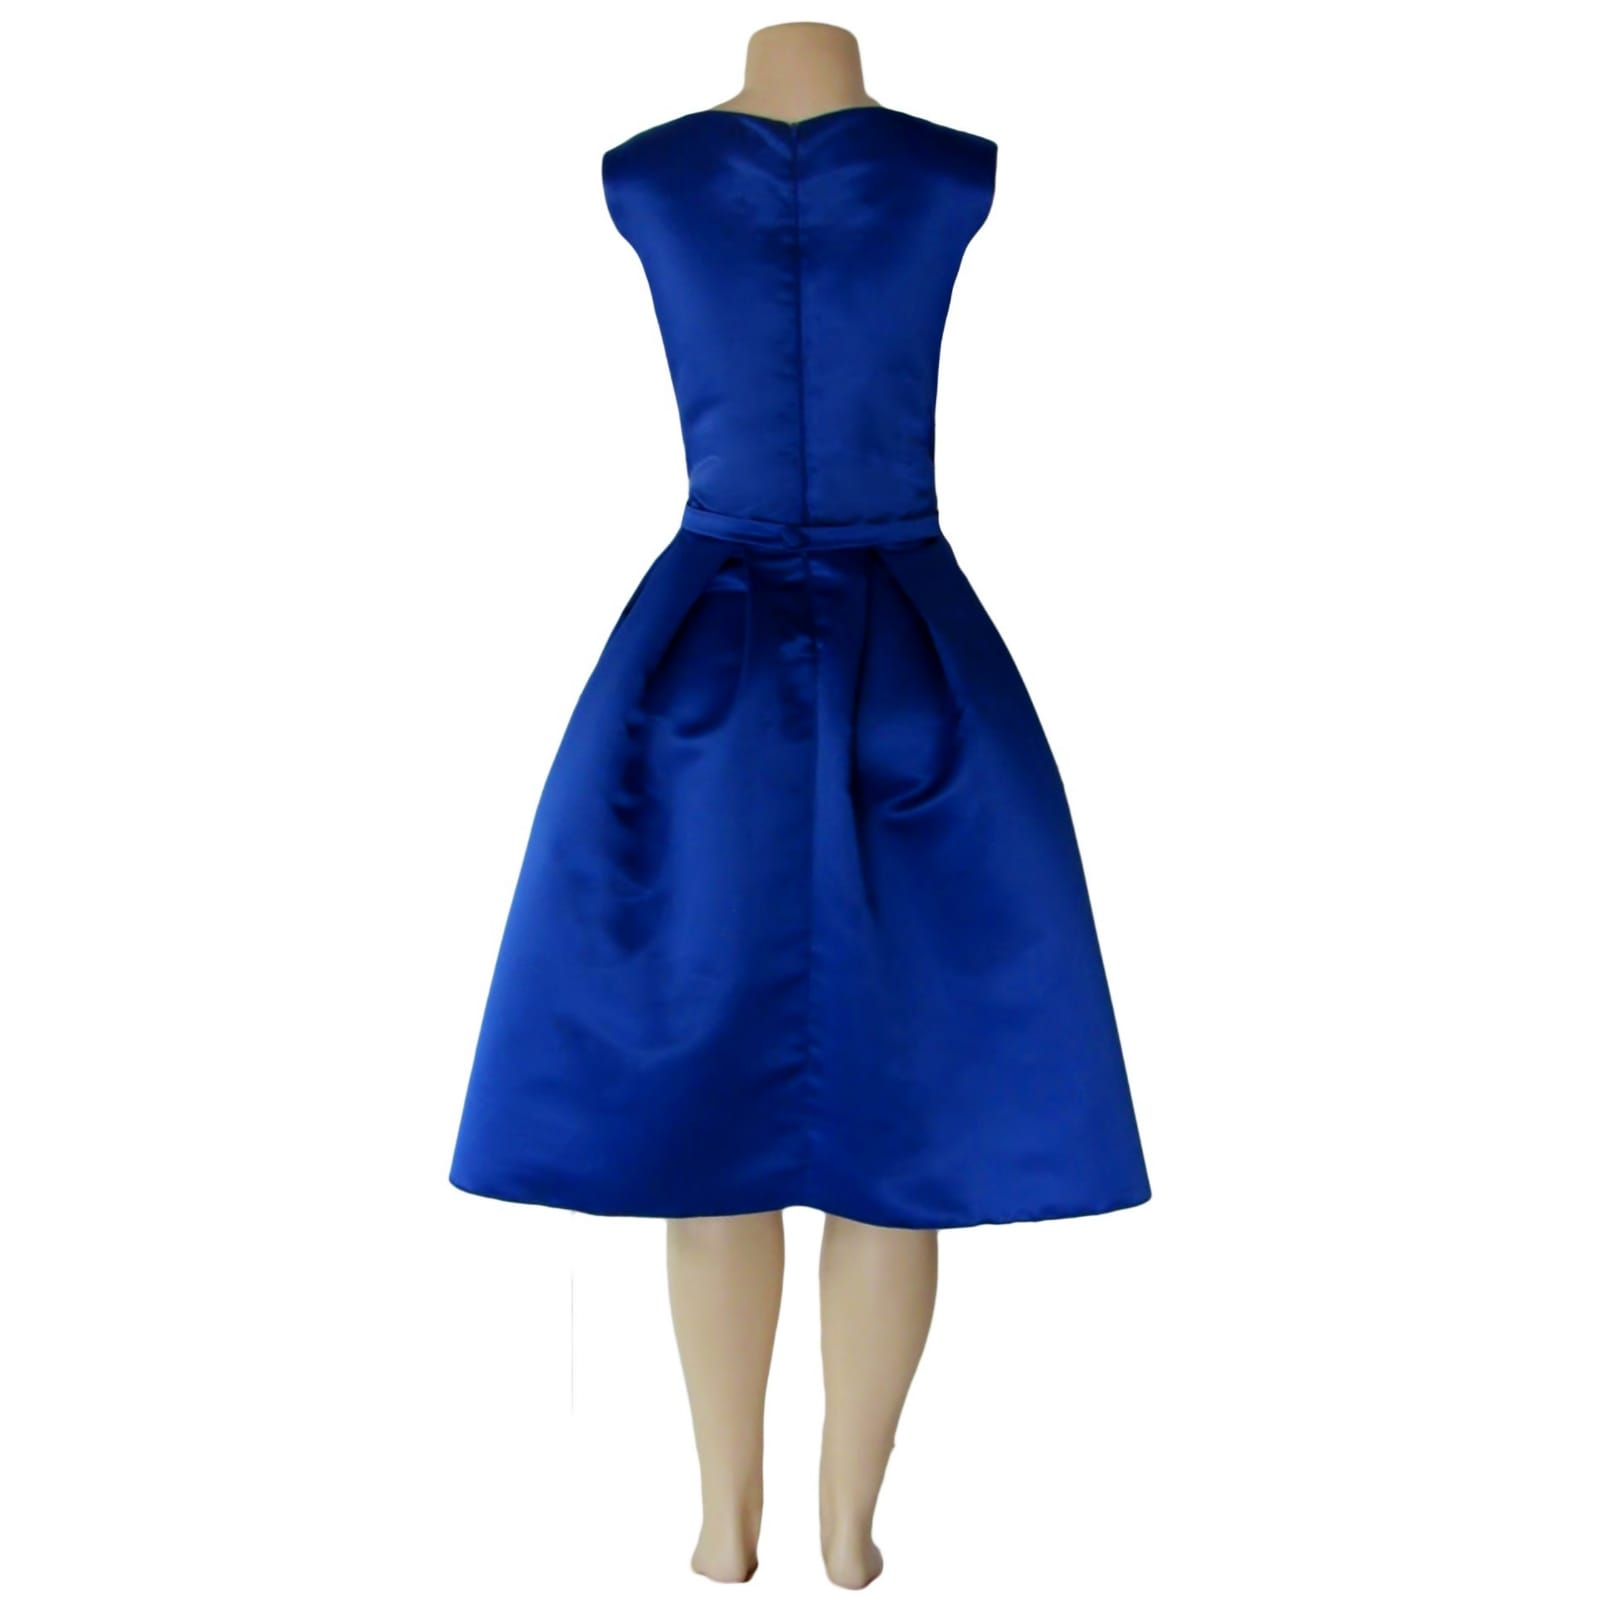 Royal blue 3/4 length pleated evening dress 3 royal blue 3/4 length pleated evening dress with a fitted bodice with a slit rounded neckline.